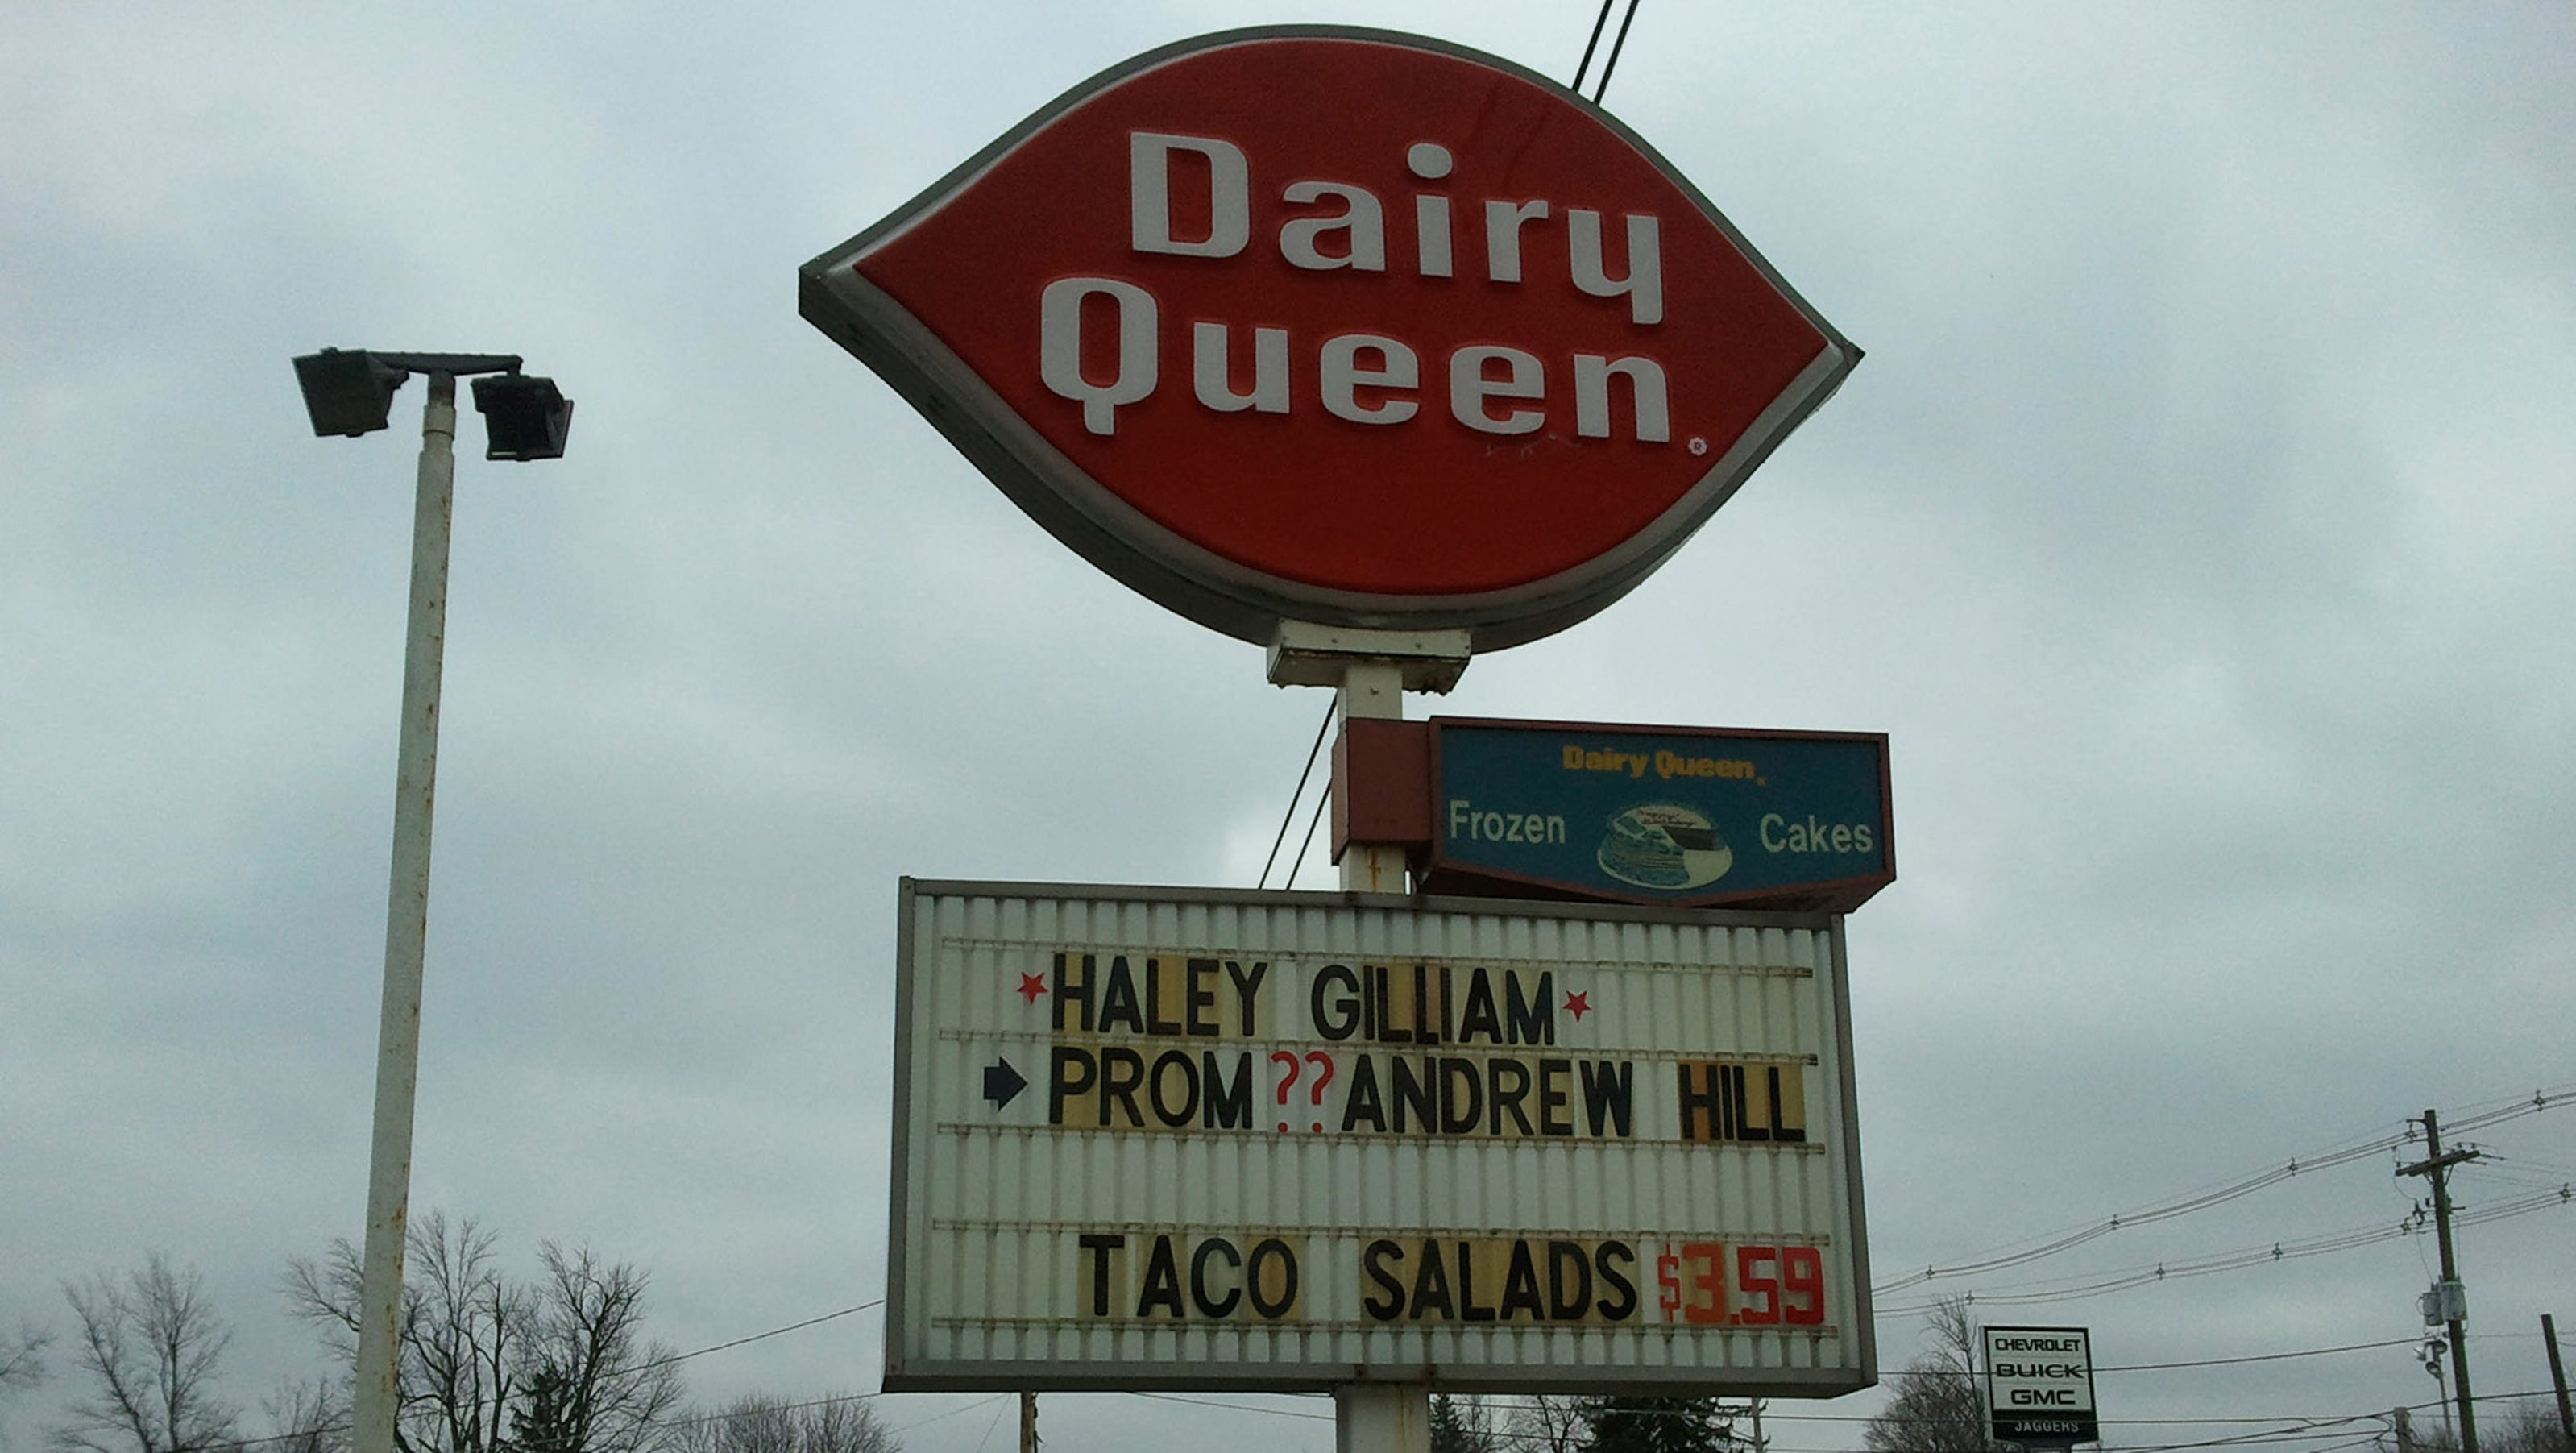 dairy queen worker u0026 39 s intervention nets royal treatment